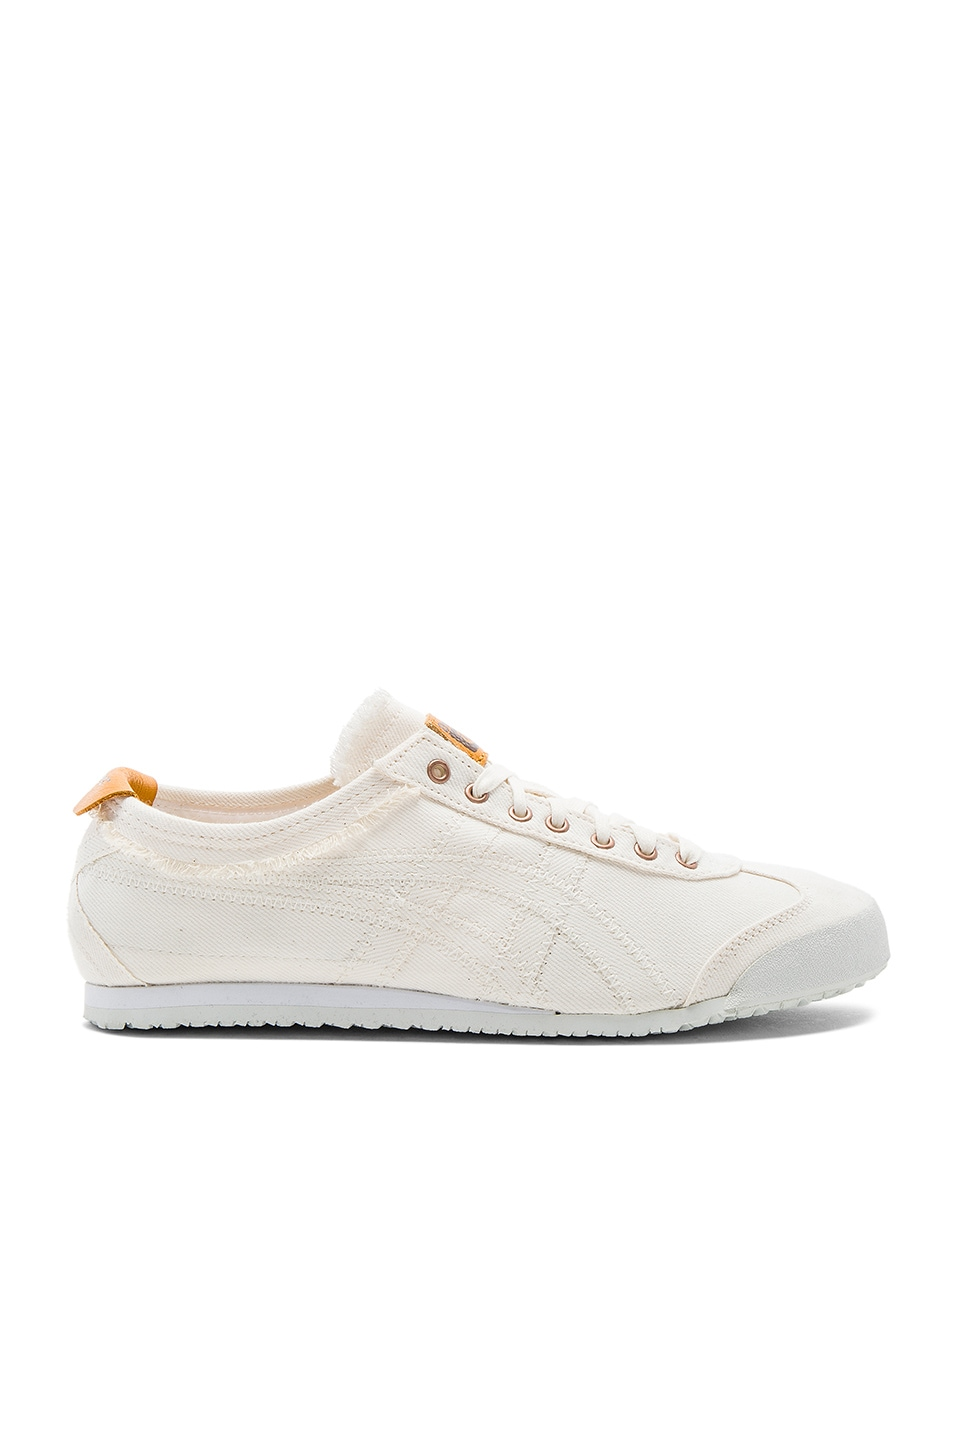 separation shoes f6af2 a5c85 Onitsuka Tiger Platinum Mexico 66 in Slight White   Sight White